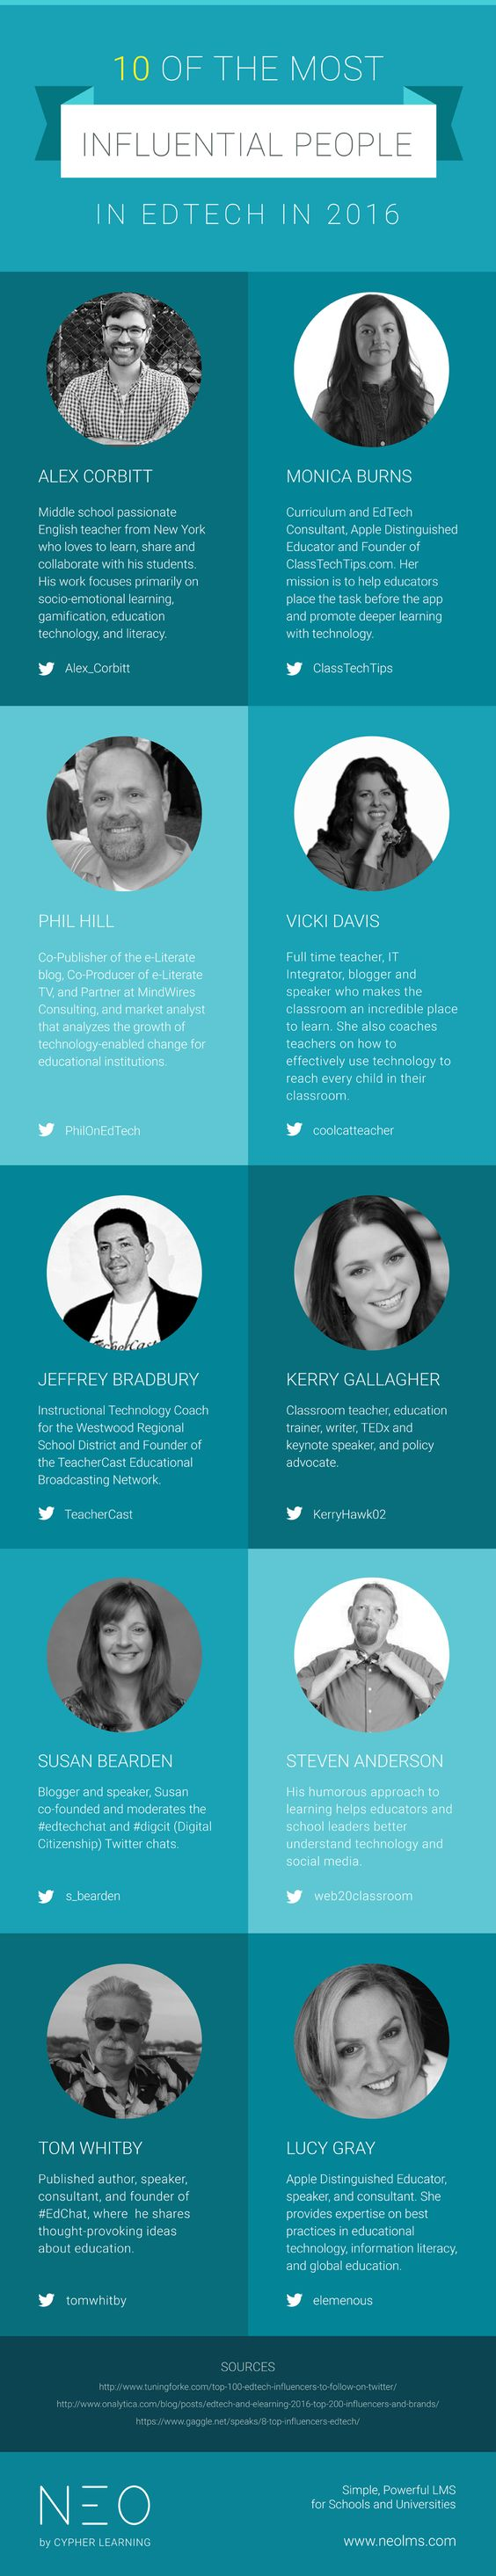 10 Most Influential People in EdTech in 2016 Infographic; http://mcdonaldsalesandmarketing.biz/tom-mcdonalds-posts/; http://mcdonaldsalesandmarketing.biz/38371/sis-lms-lcms-educationally-innovative-software/; http://mcdonaldsalesandmarketing.biz/research/: